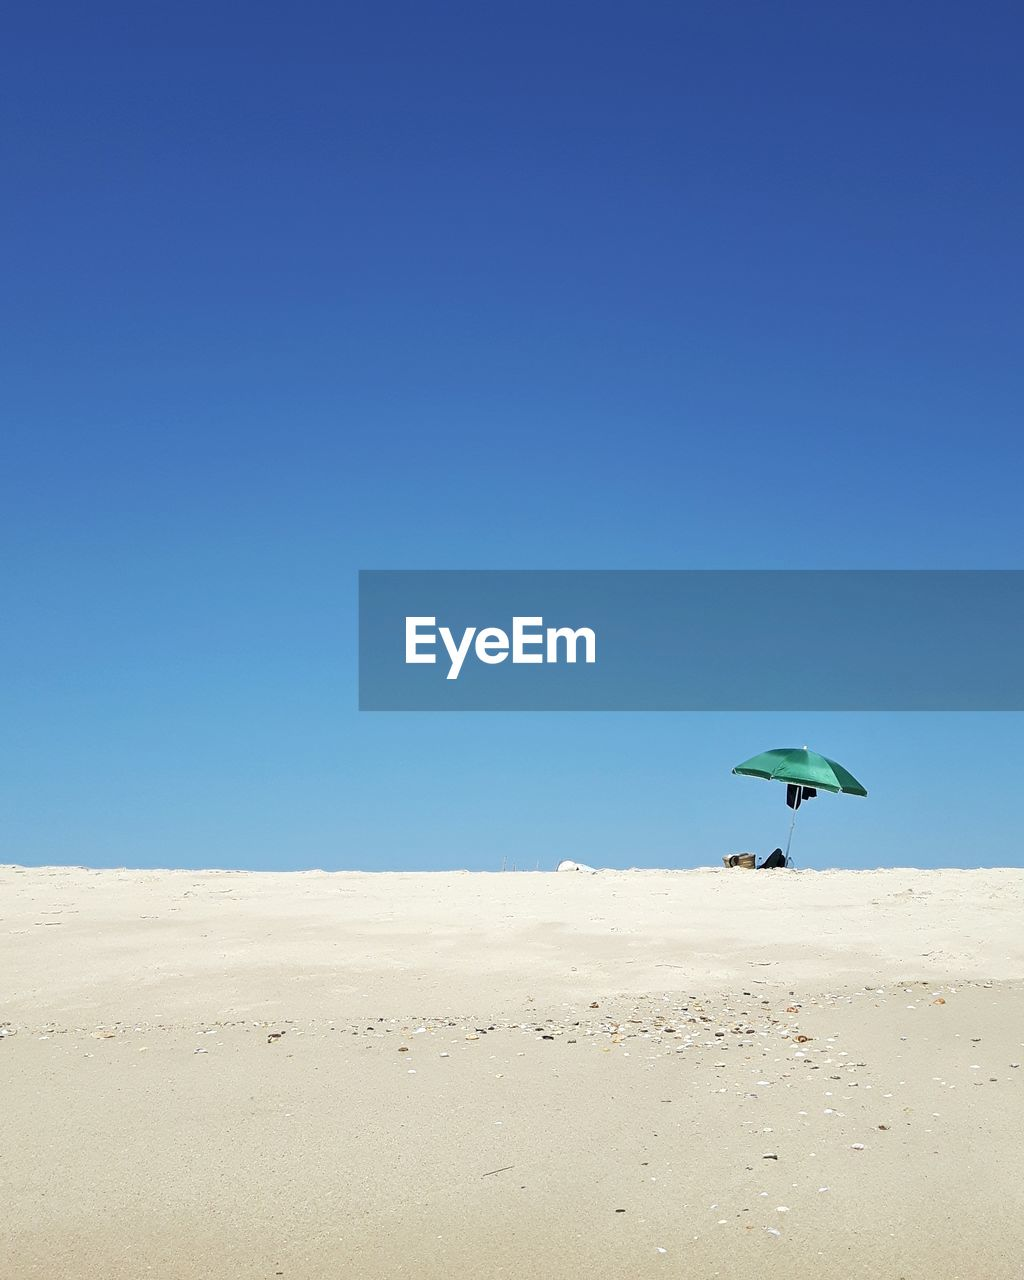 SCENIC VIEW OF SAND DUNE AGAINST CLEAR BLUE SKY